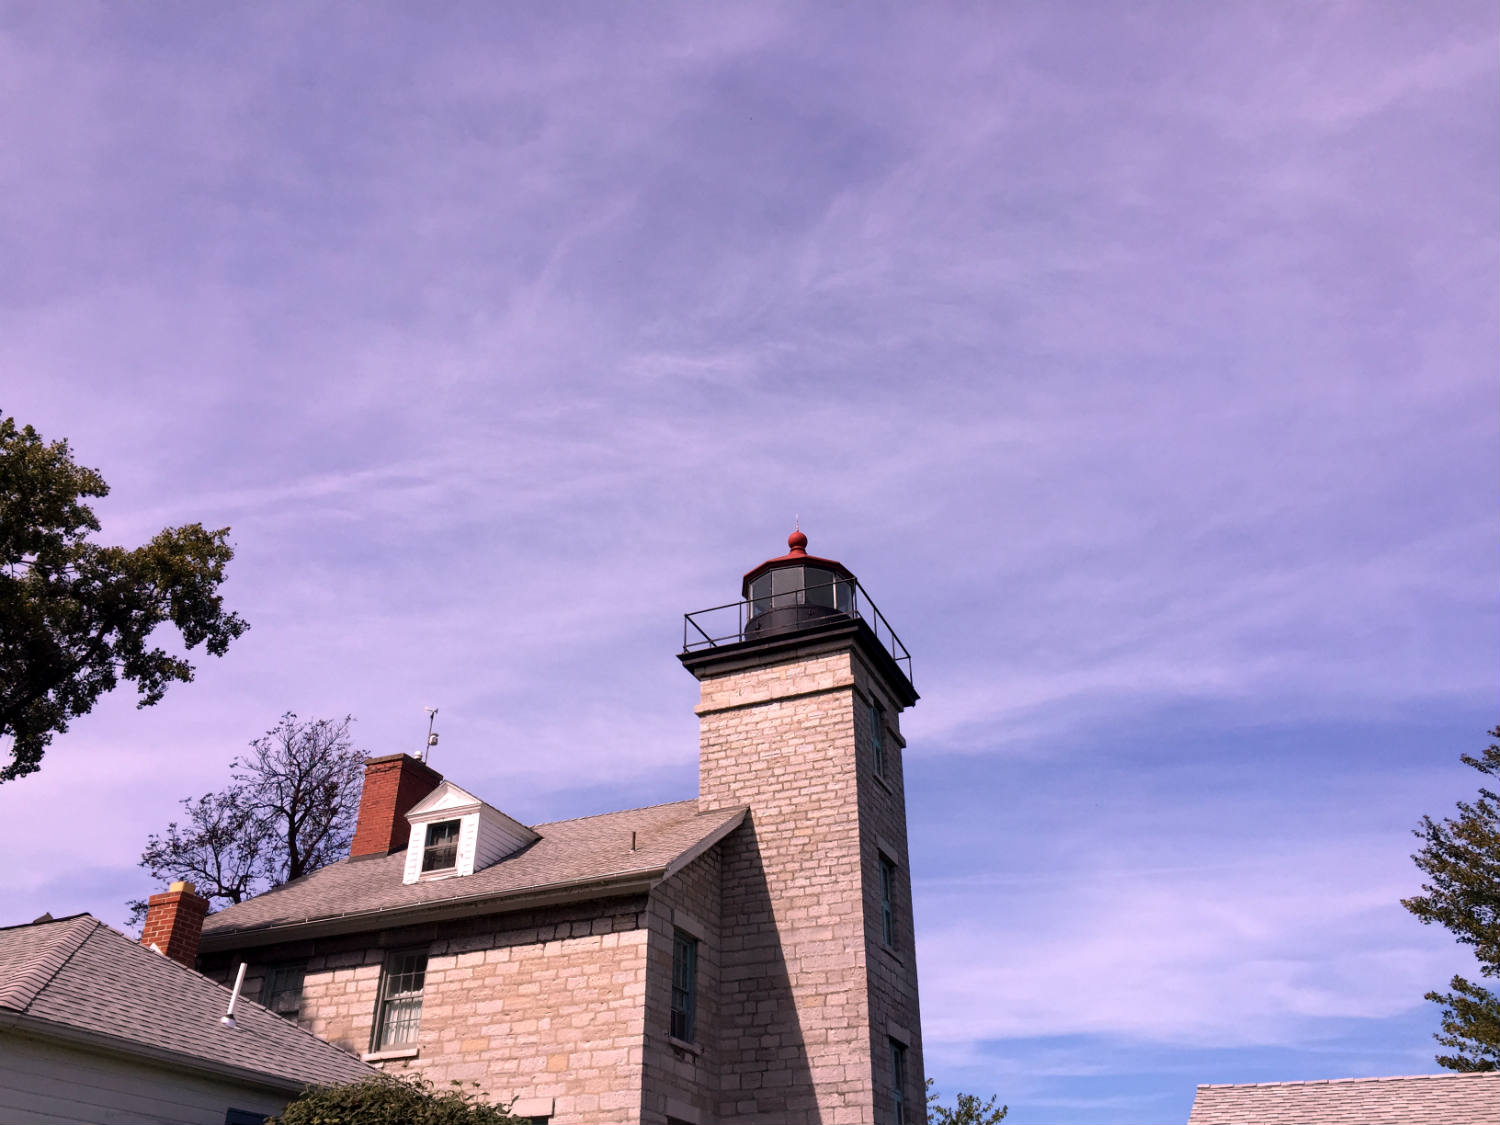 Sodus Bay Lighthouse in Sodus Point, NY